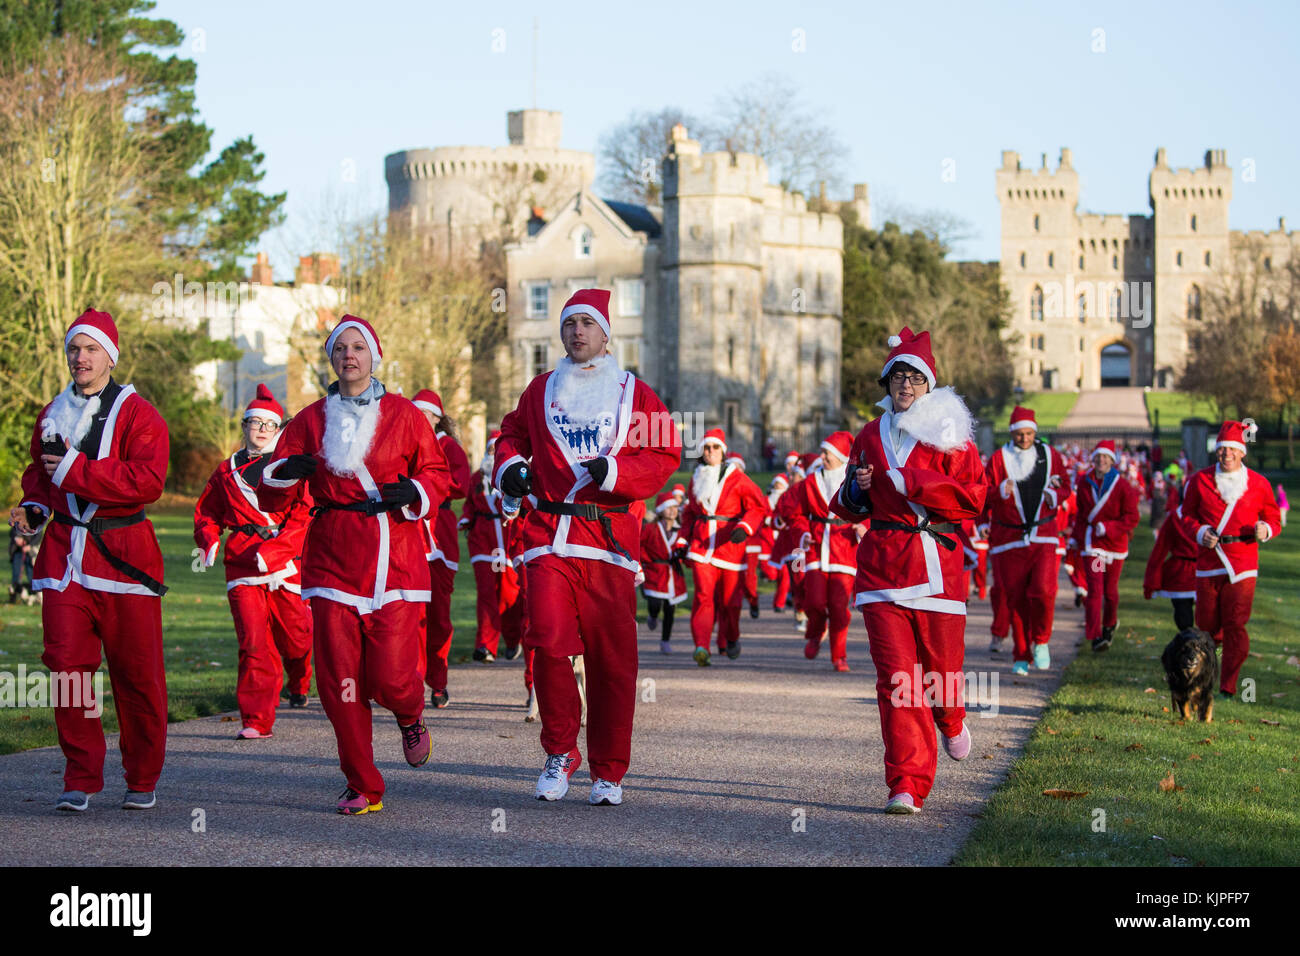 Windsor, UK. 25th November, 2017. Runners dressed as Santa Claus and his reindeer on the Long Walk in Windsor Great - Stock Image